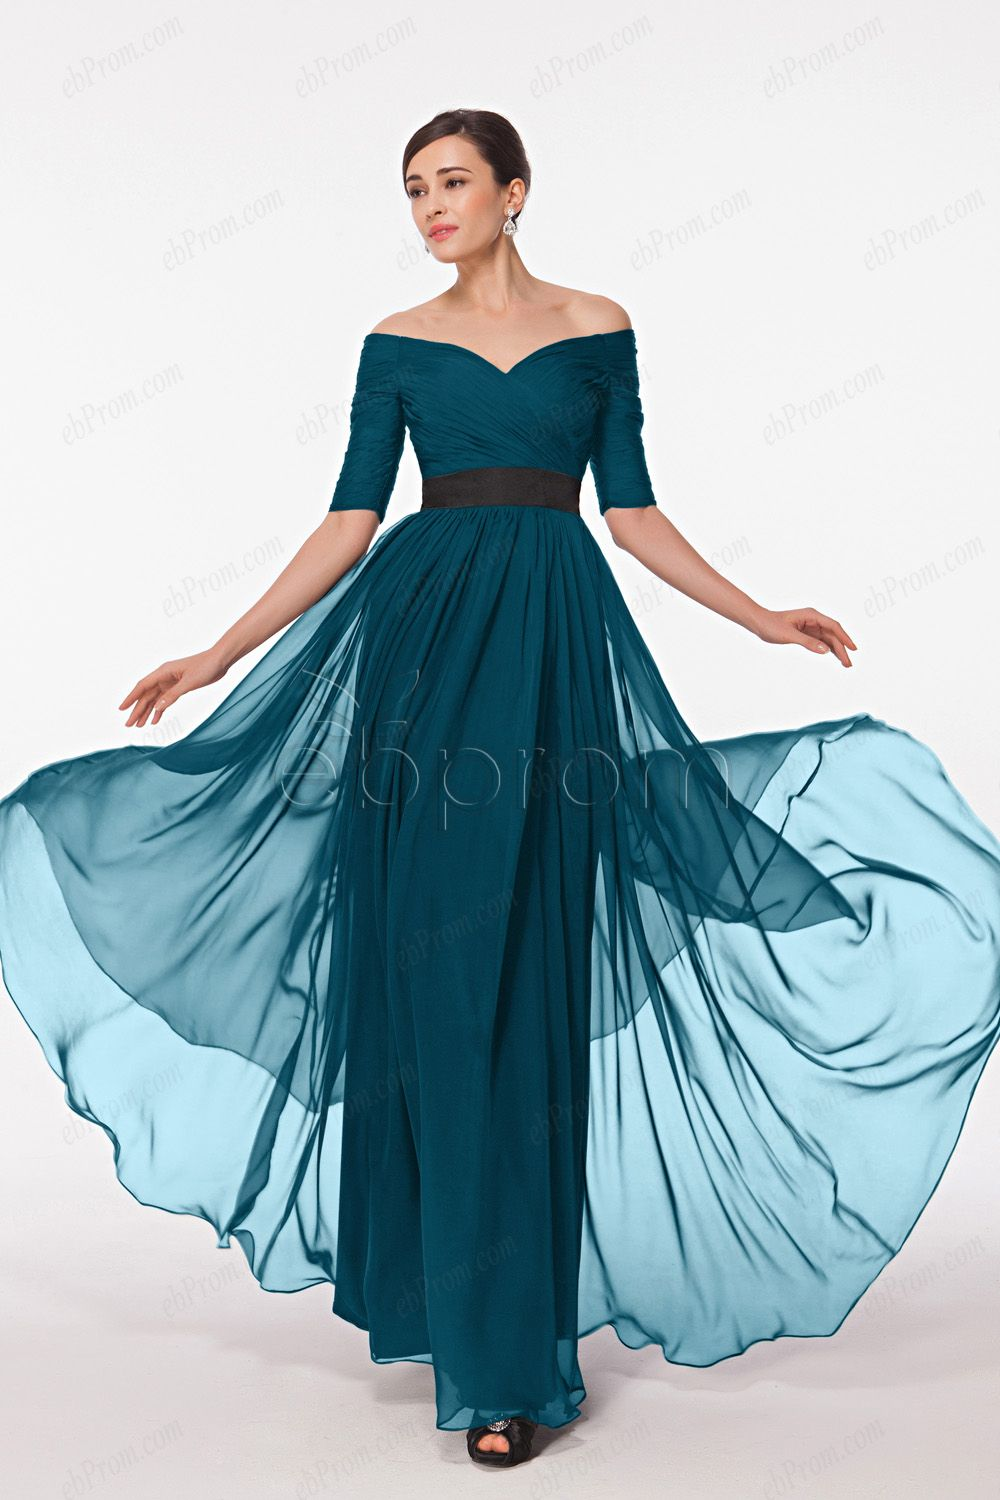 Teal off the shoulder evening dress with sleeves | Blue formal dresses